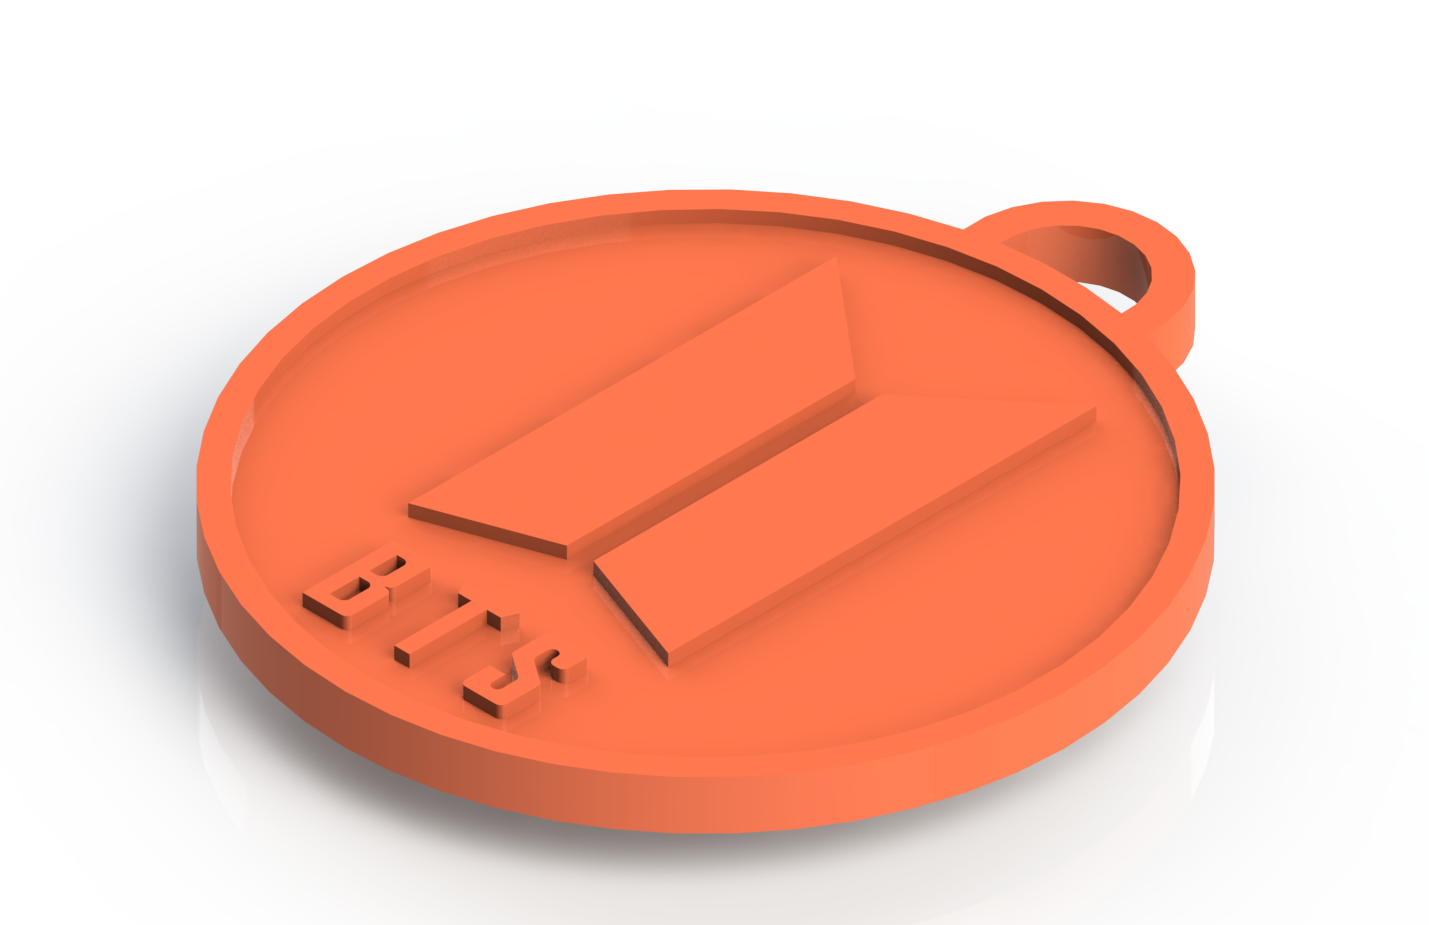 87878.png Download free STL file BTS KEYBOARD • 3D printable object, Lubal